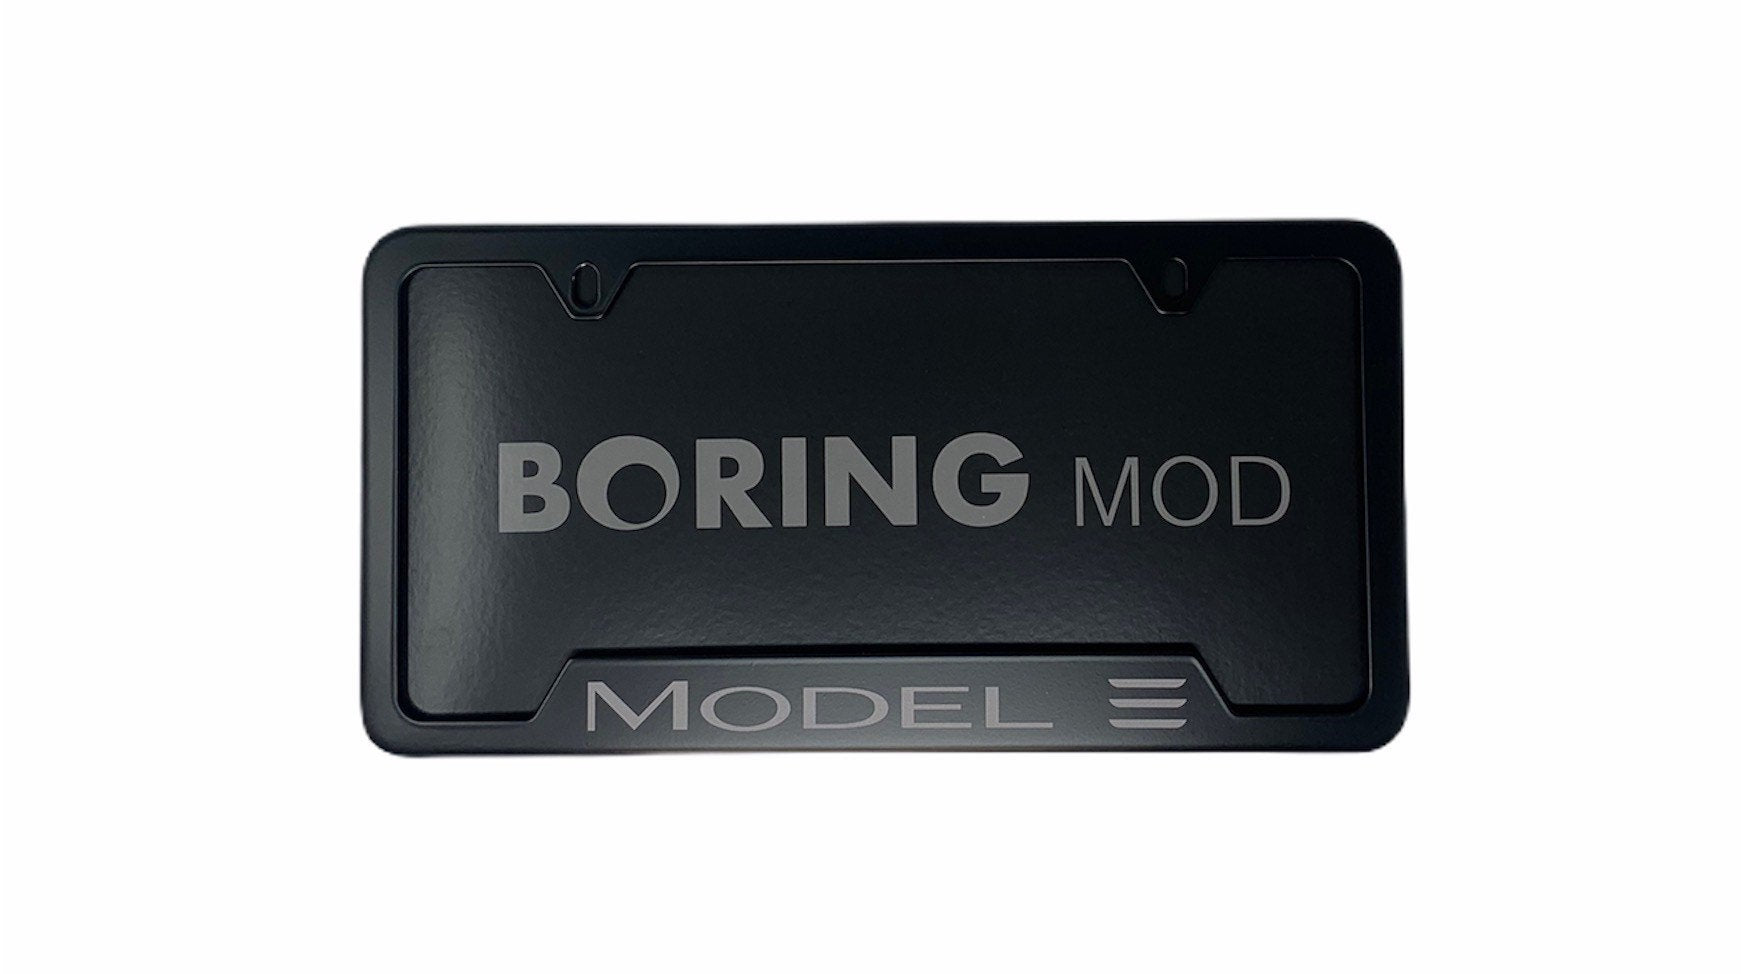 Tesla MODEL 3 /// Gray on Black Metal License Plate Frame, Fits TESLA, Printed, Performance,  Warranty / Cali